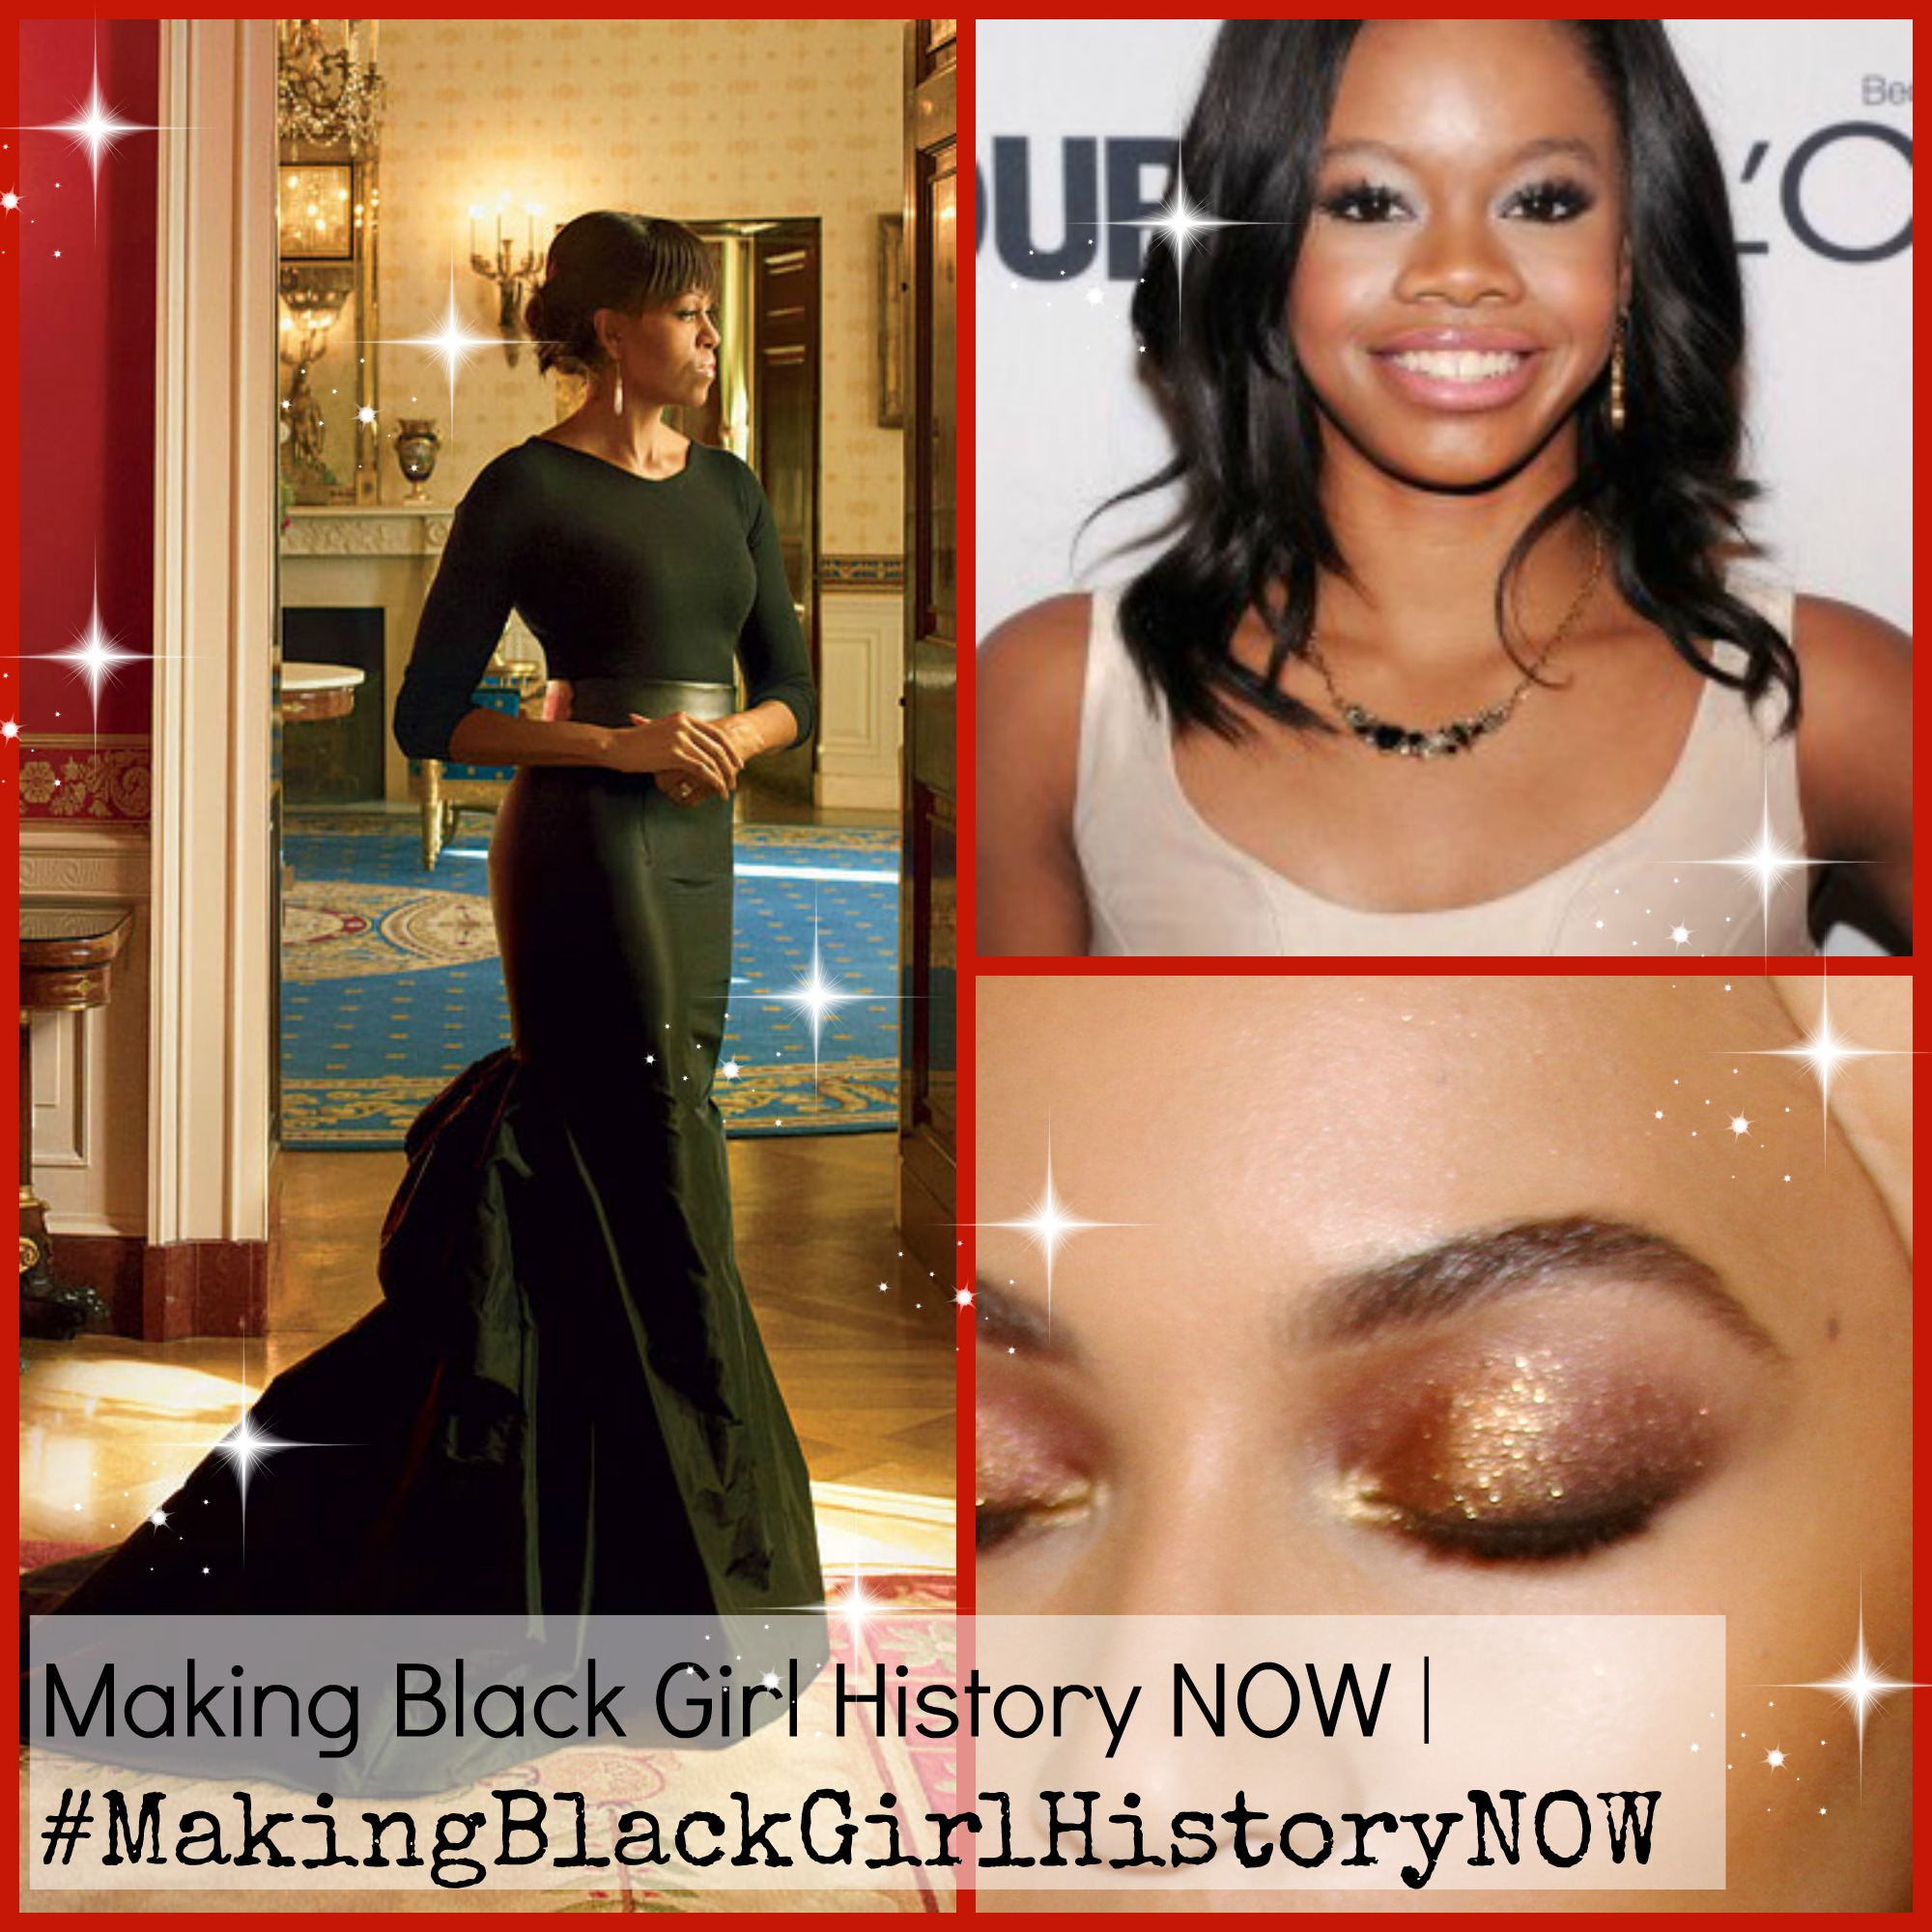 #MakingBlackGirlHistoryNow First Lady Michelle Obama, gabby douglas, beyonce